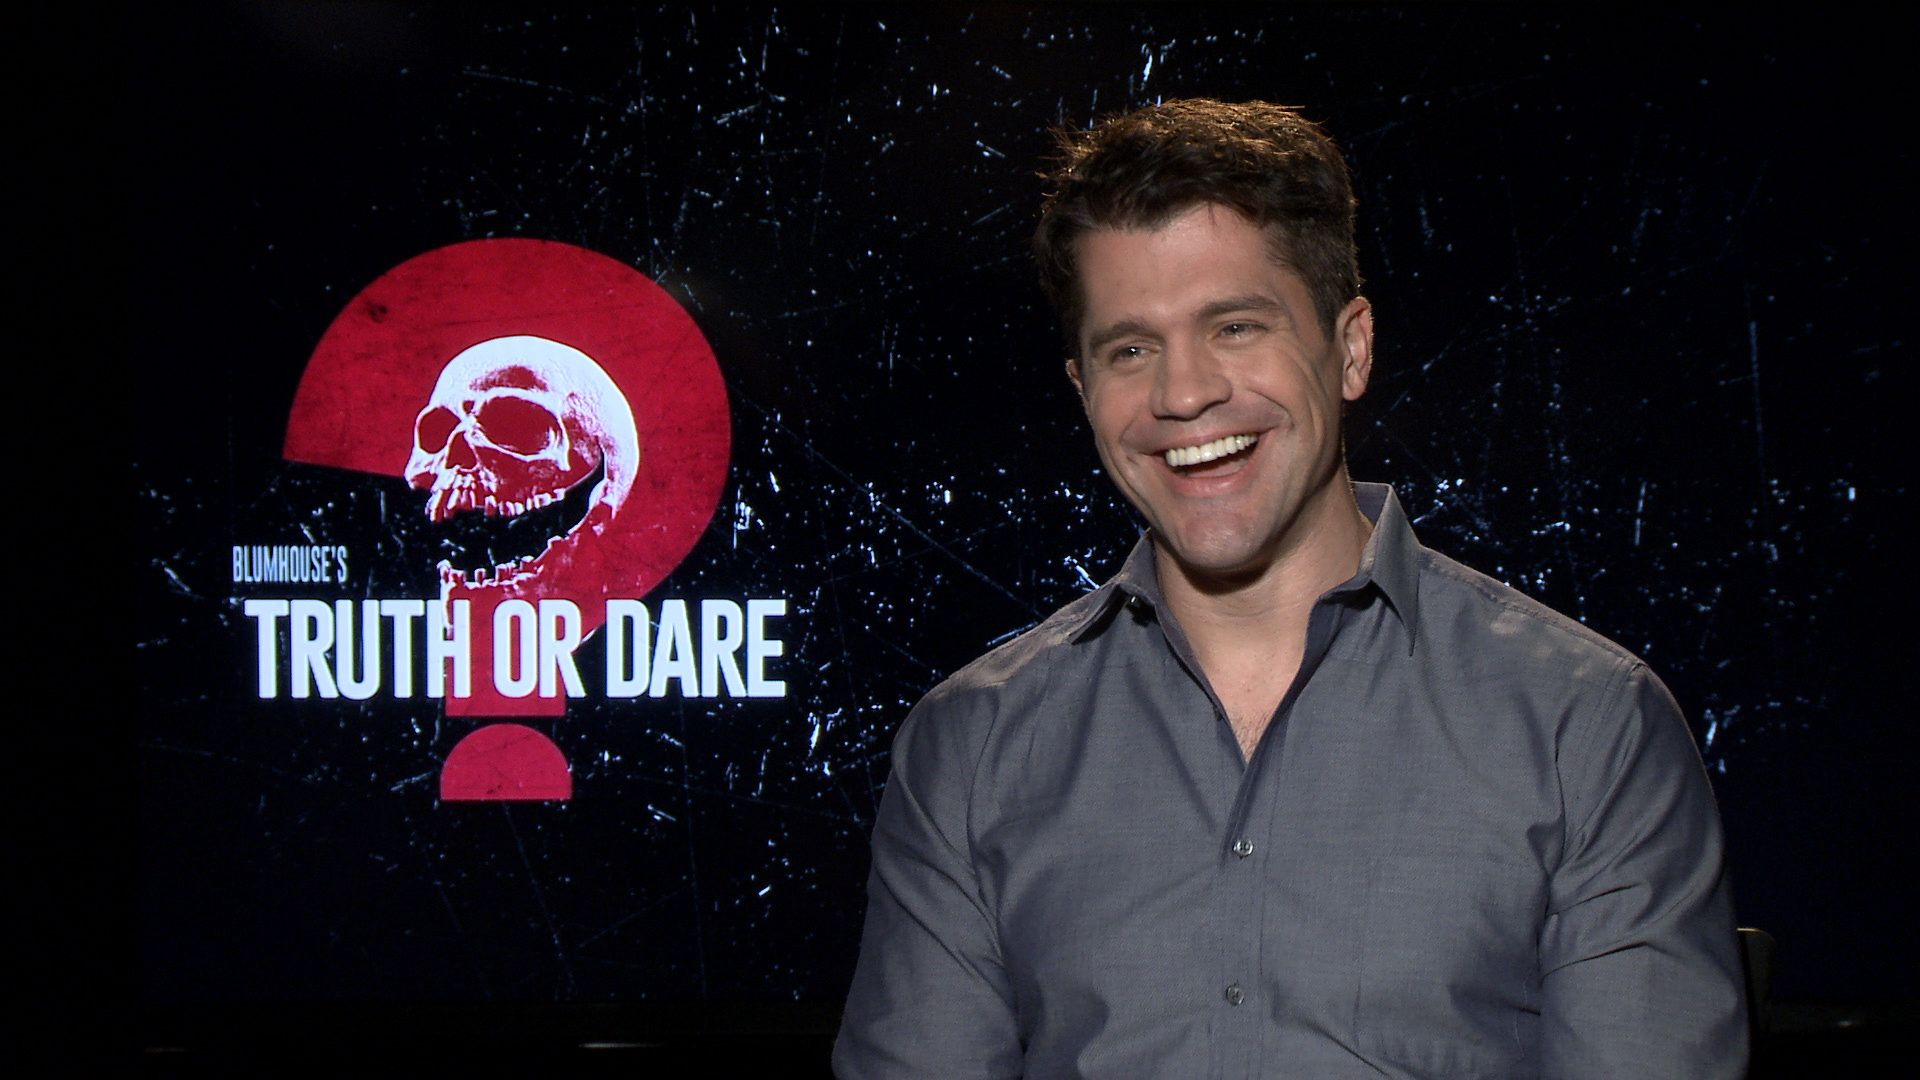 Director Jeff Wadlow on the Thrills and Kills of 'Truth or Dare'